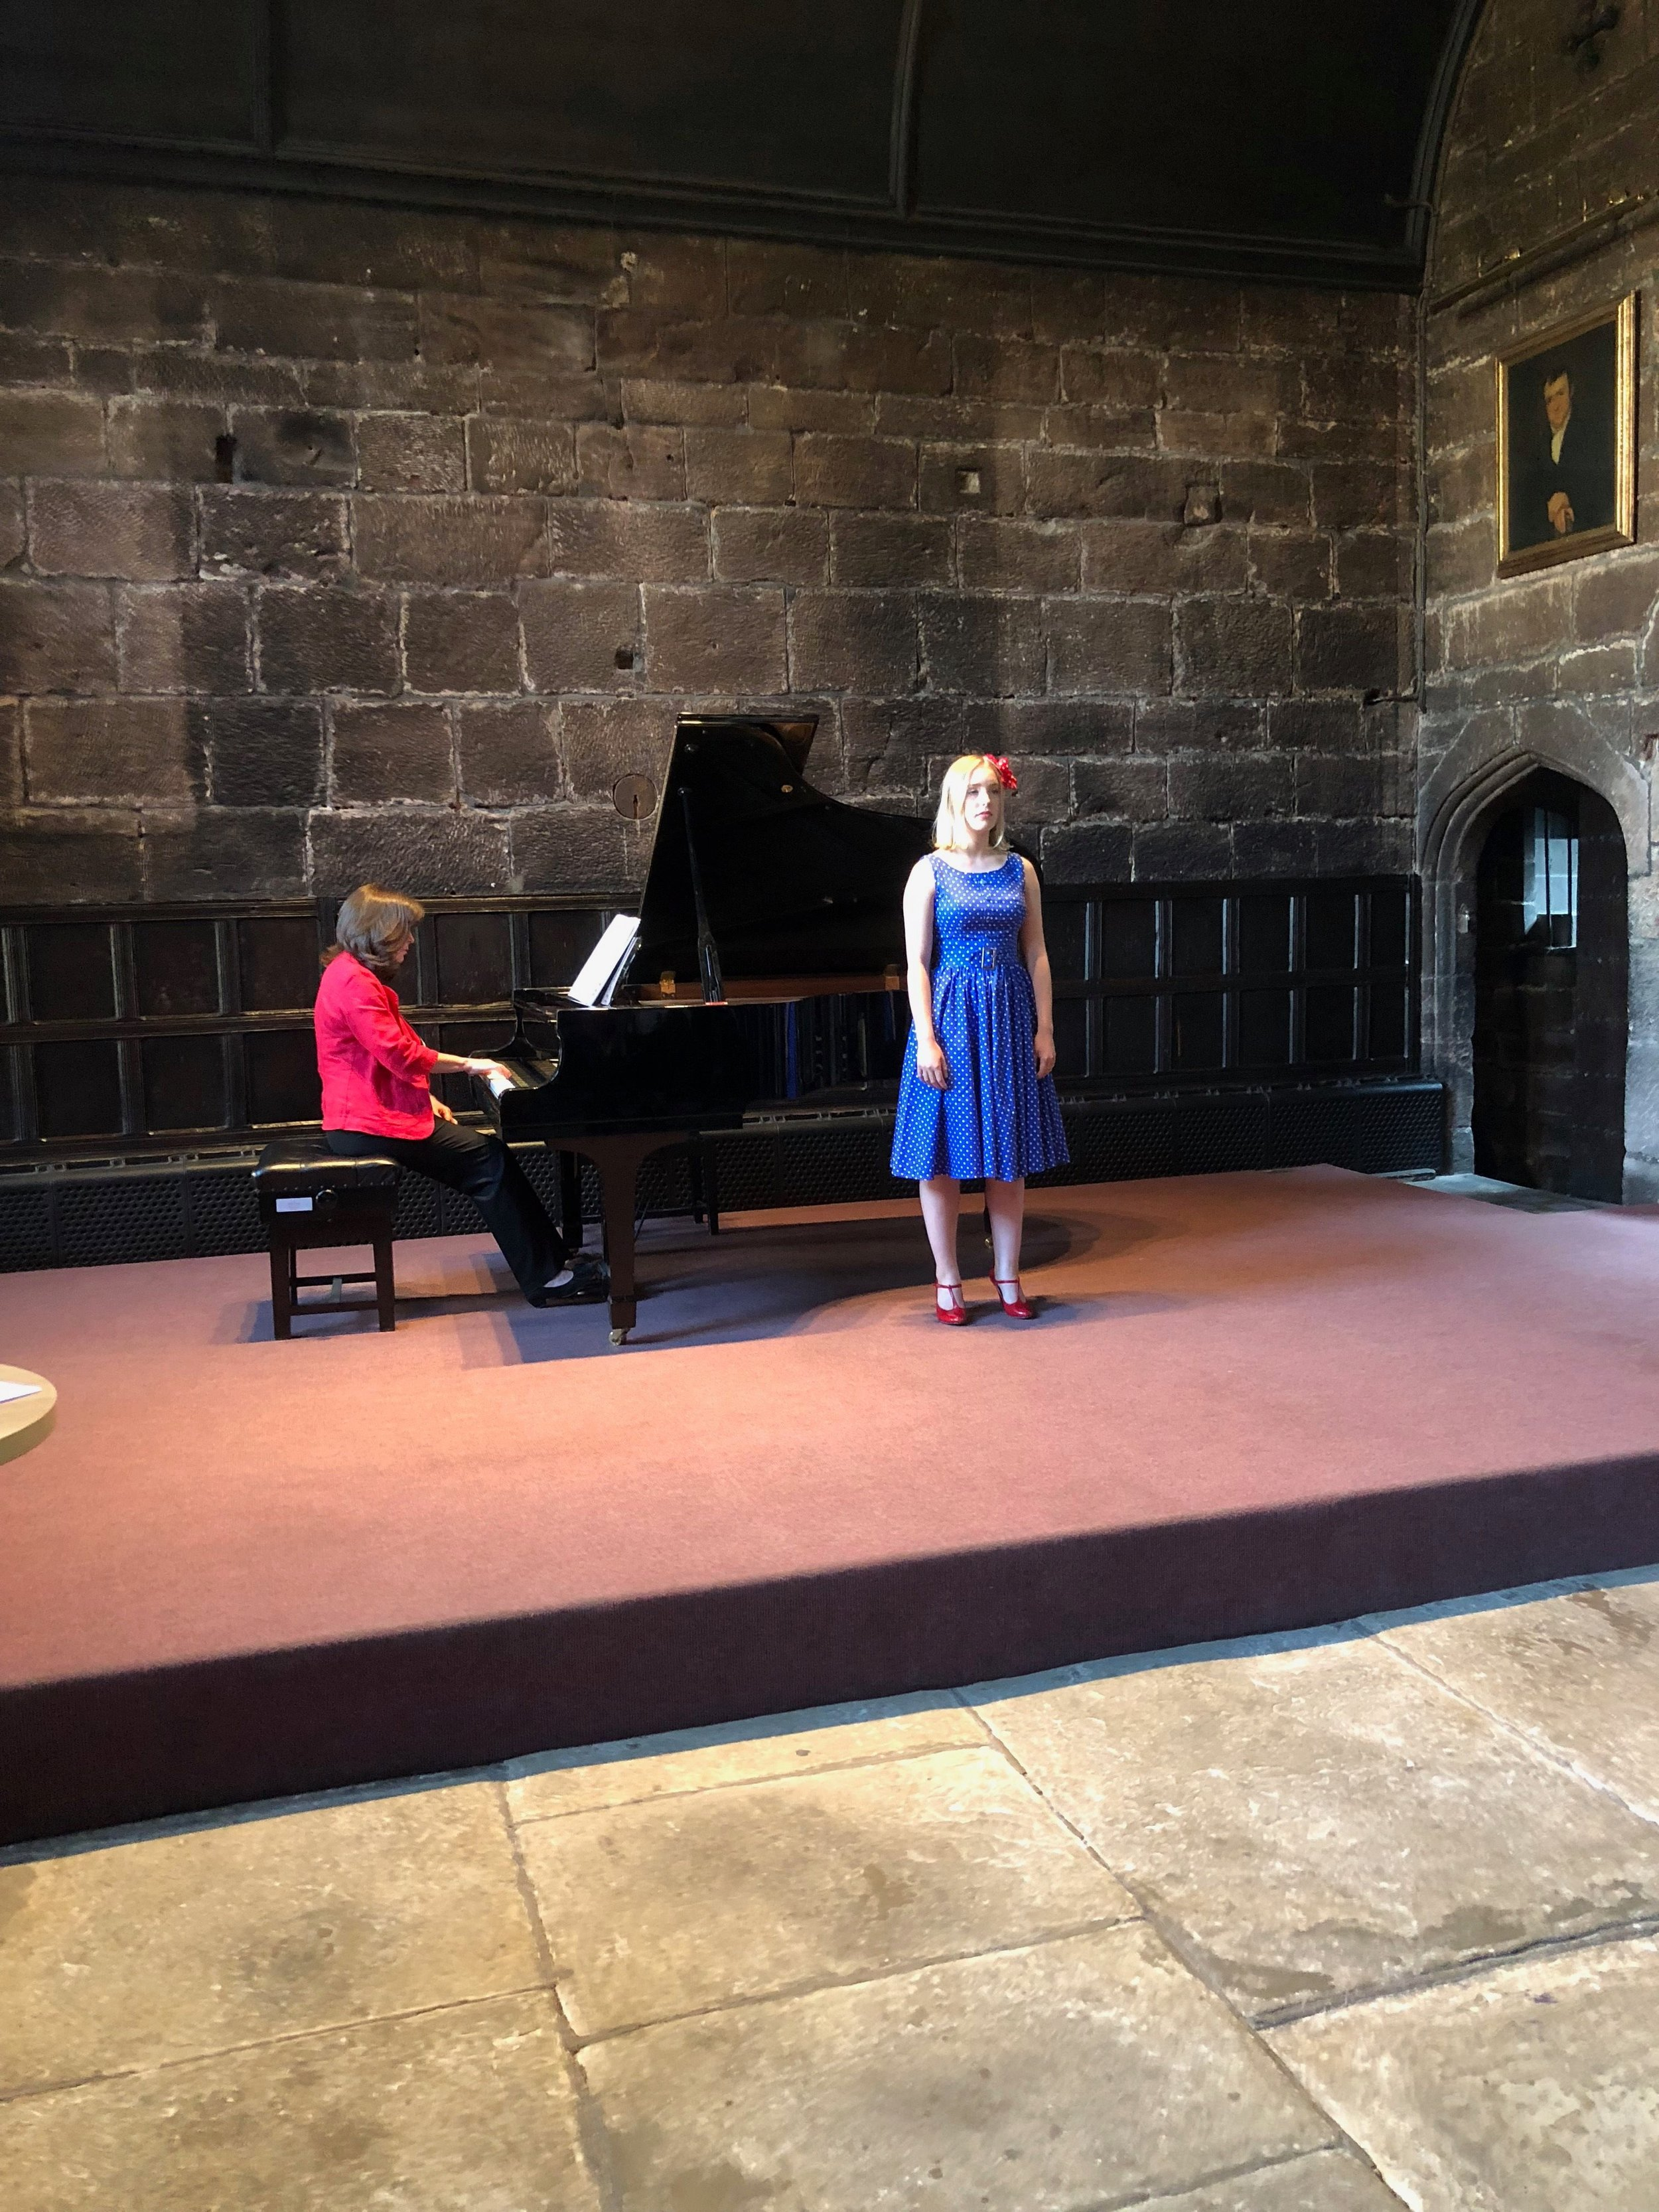 The Cheetham School of Music provided excellent entertainment, performing pieces by the celebrated Norwegian composer Edvard Grieg